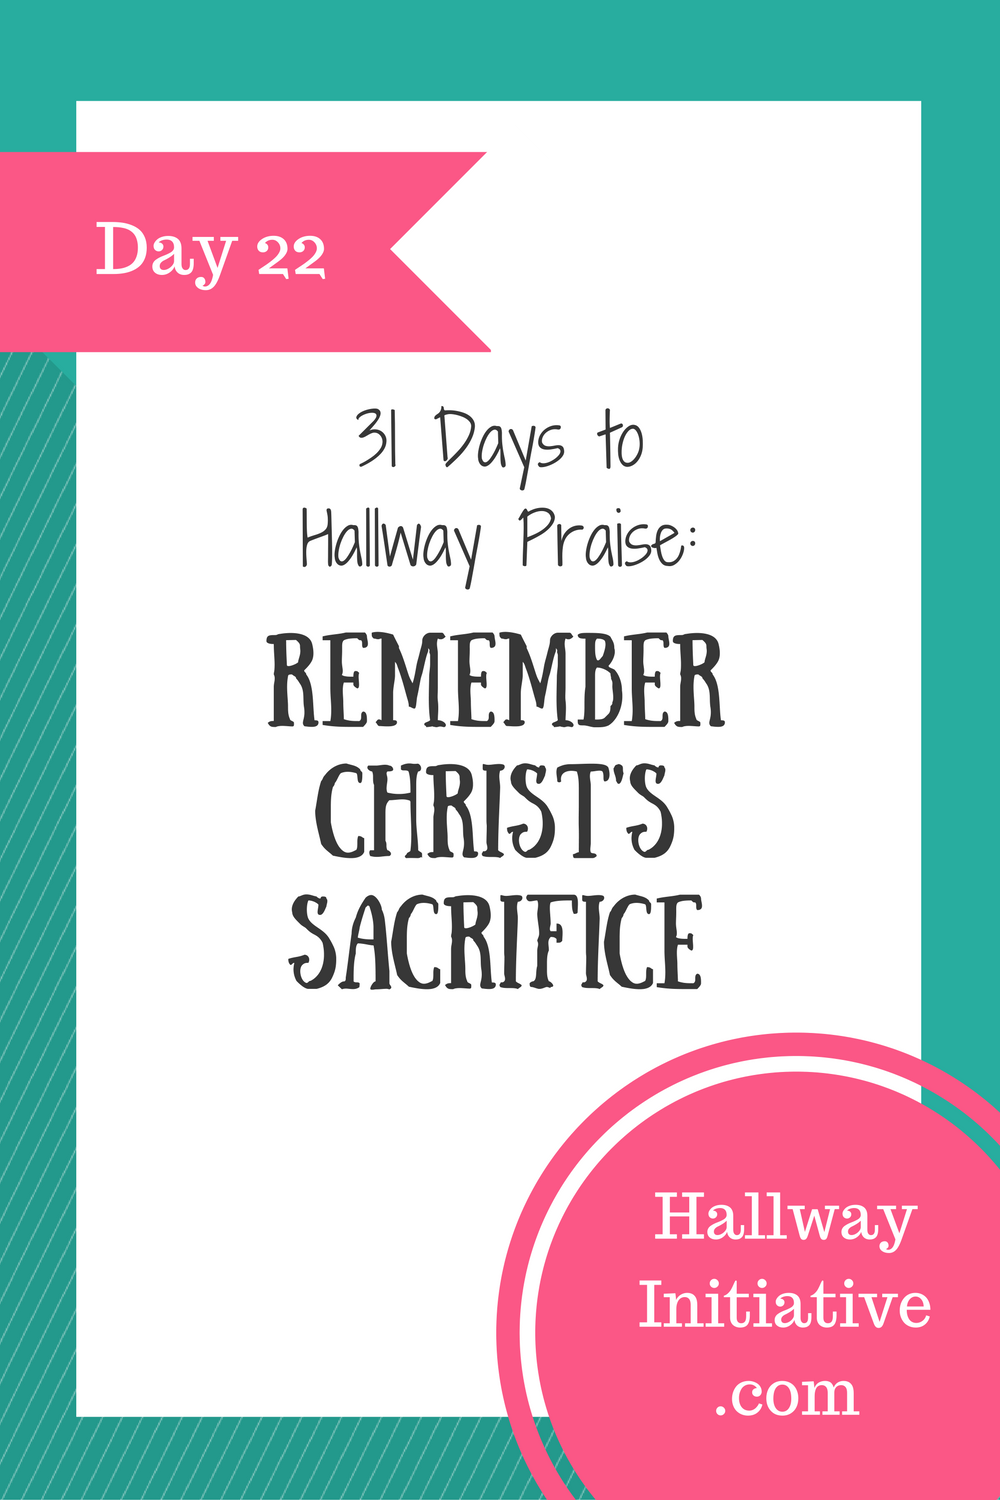 Day 22: remember Christ's sacrifice